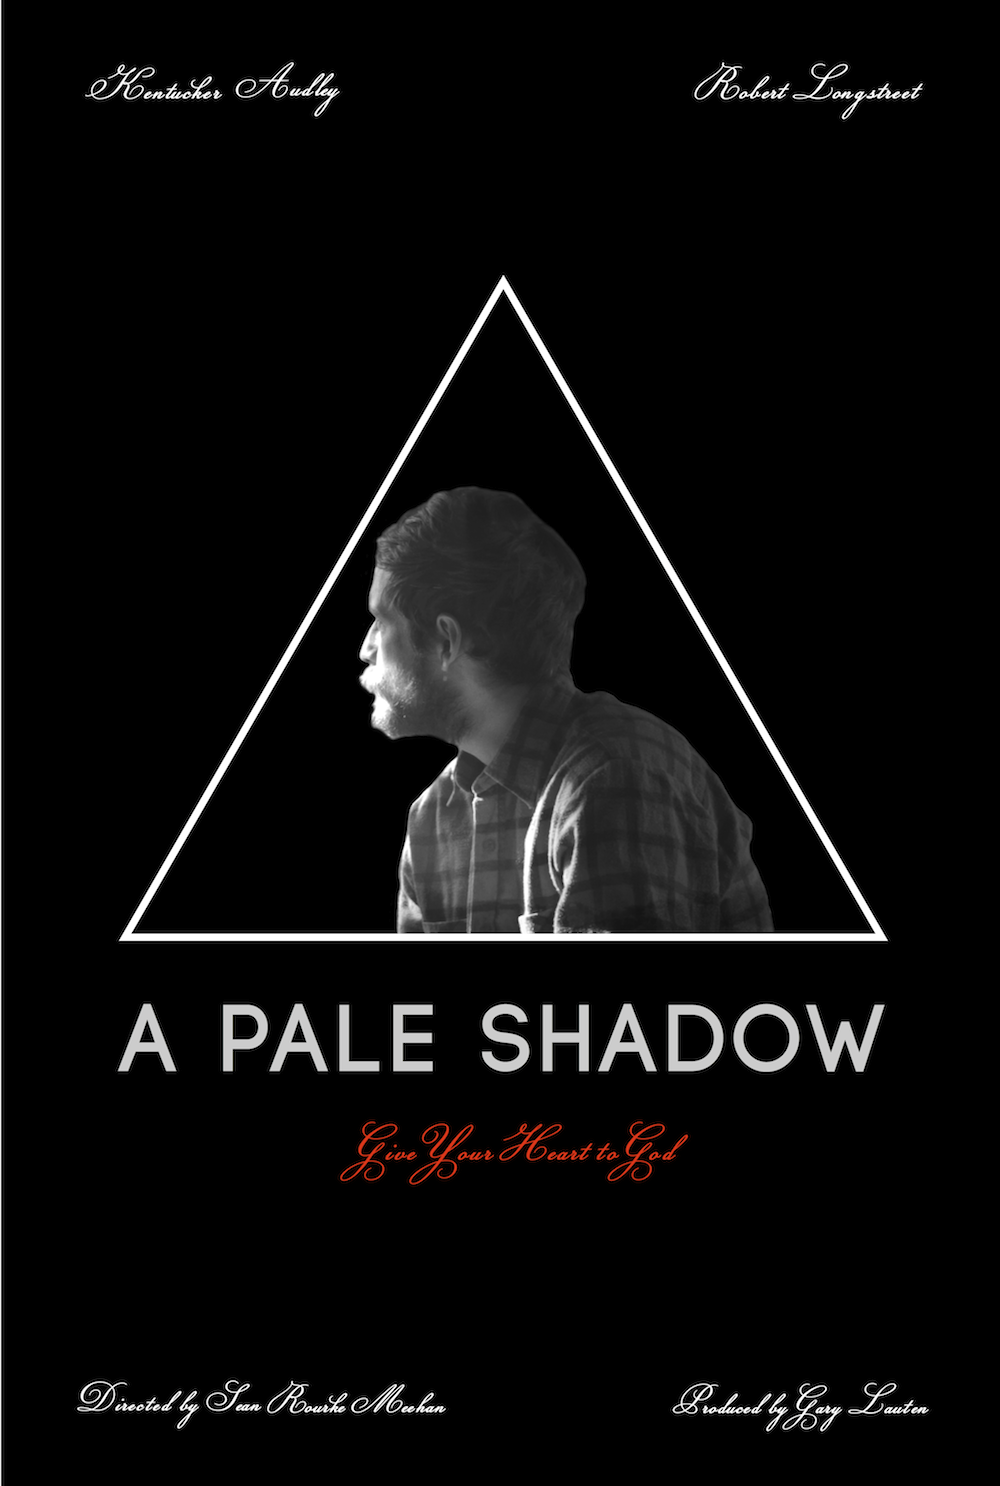 A Pale Shadow Poster.png